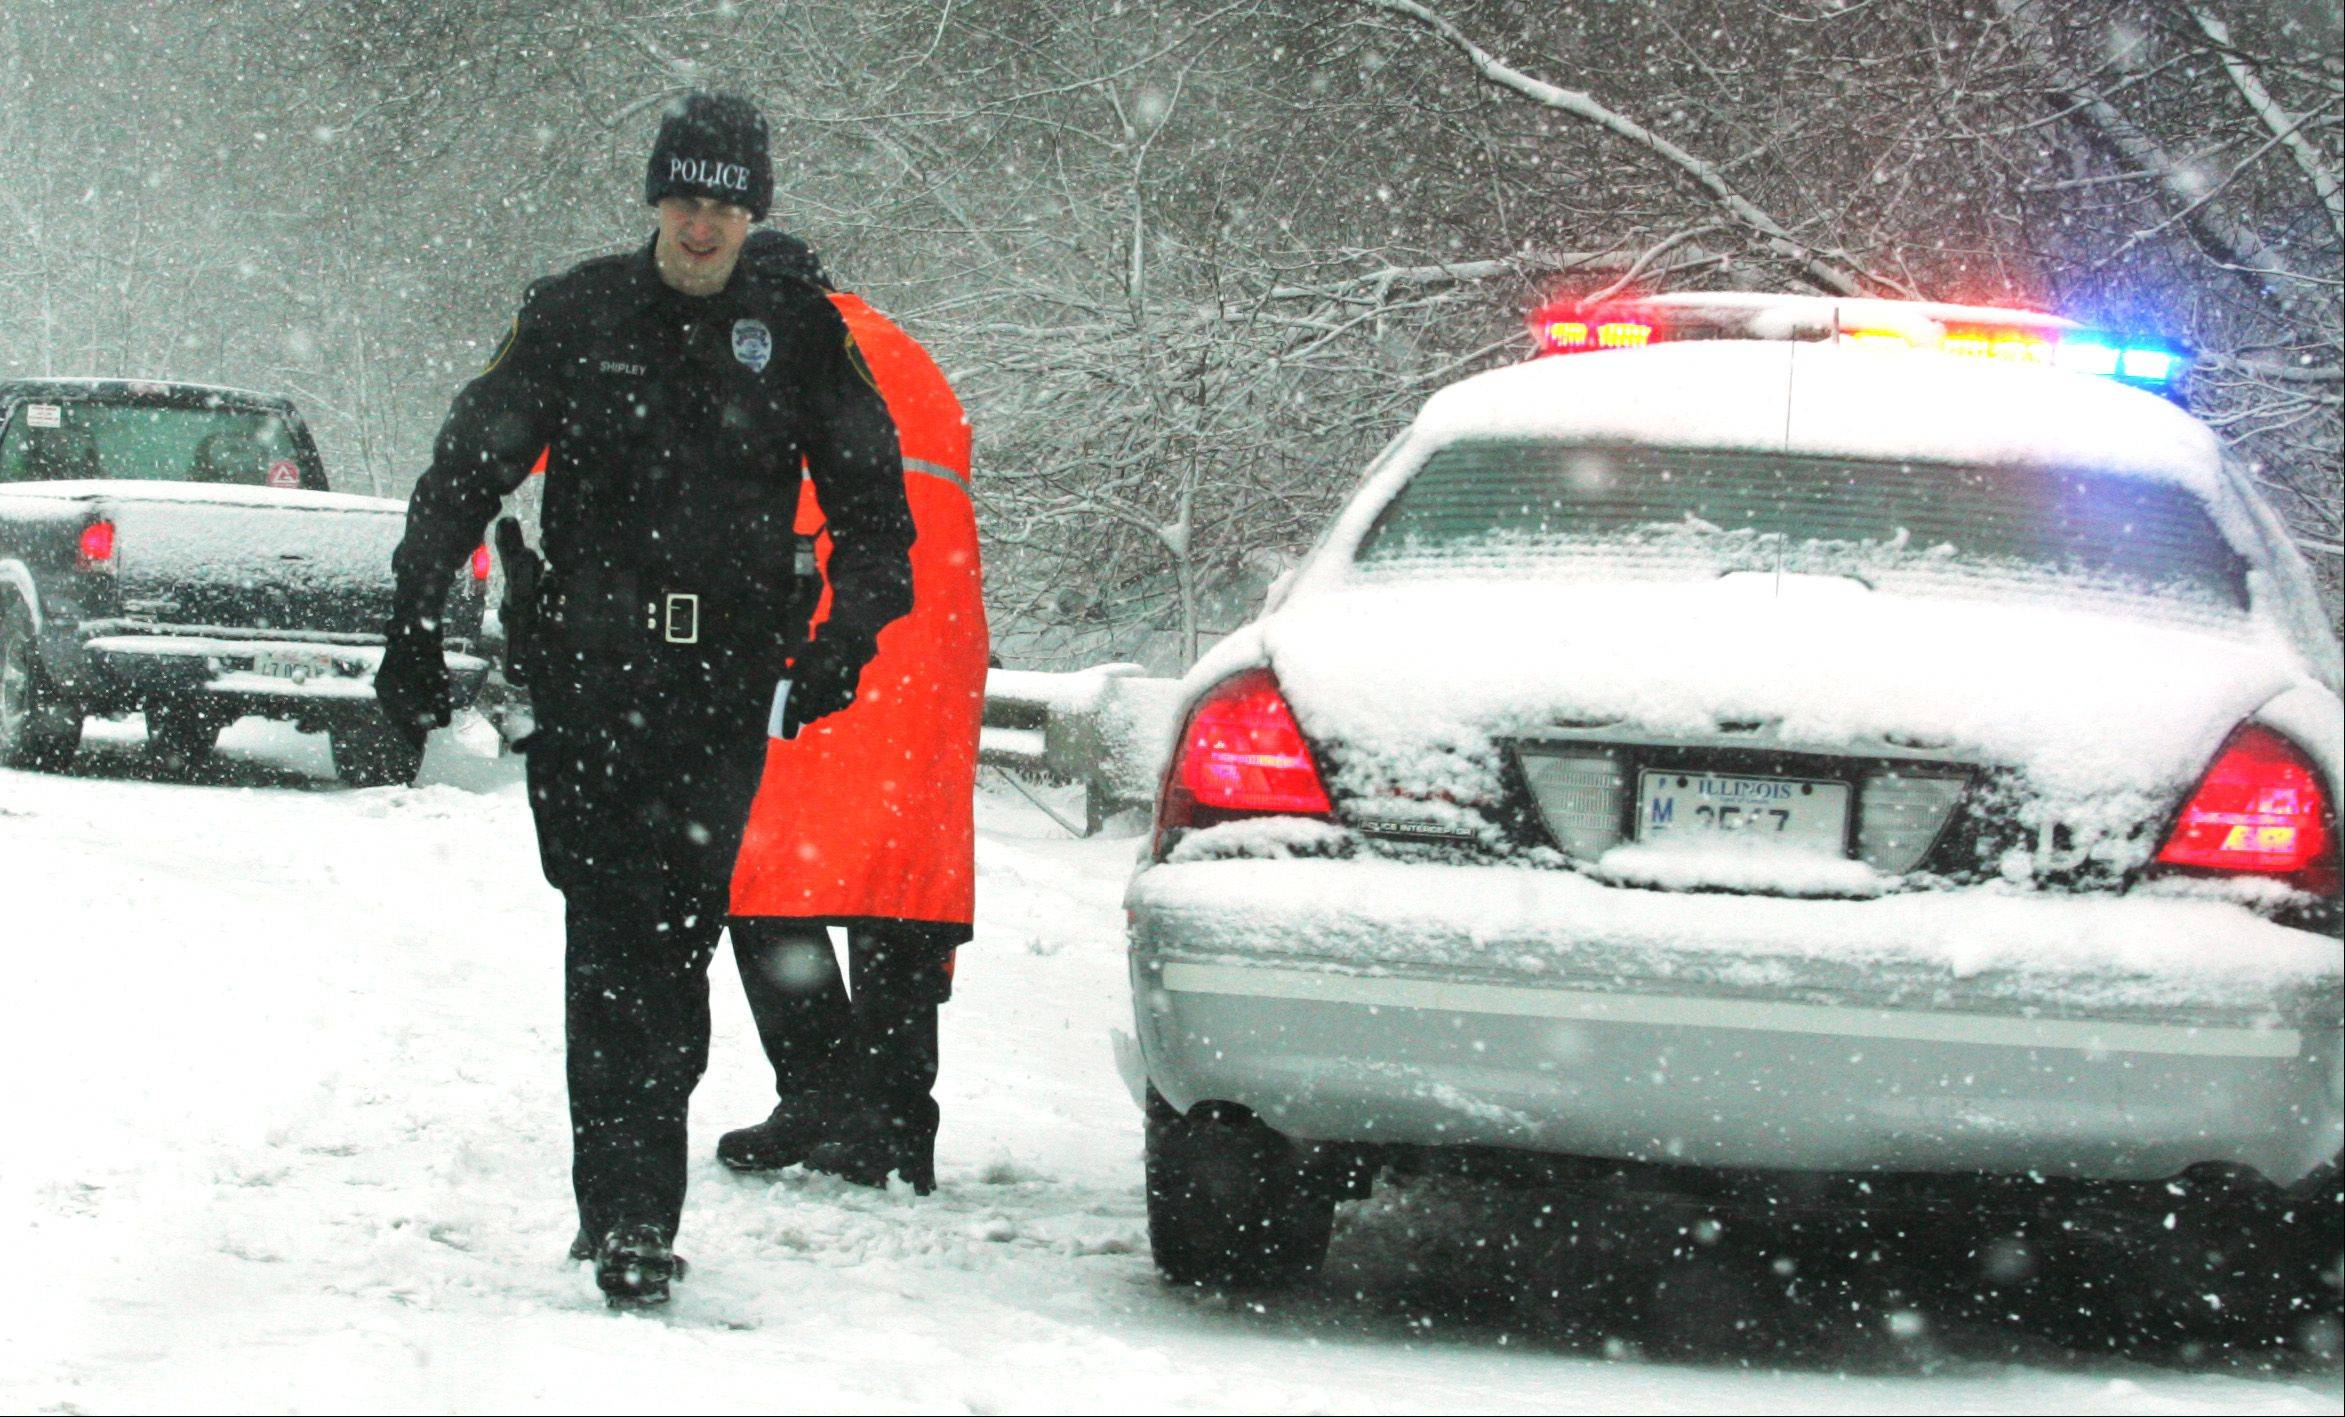 A West Dundee police officer battles the elements at the scene of a multicar crash which sent at least one person to the hospital and snarled traffic on Route 31 near Boncosky Road in West Dundee Tuesday afternoon.